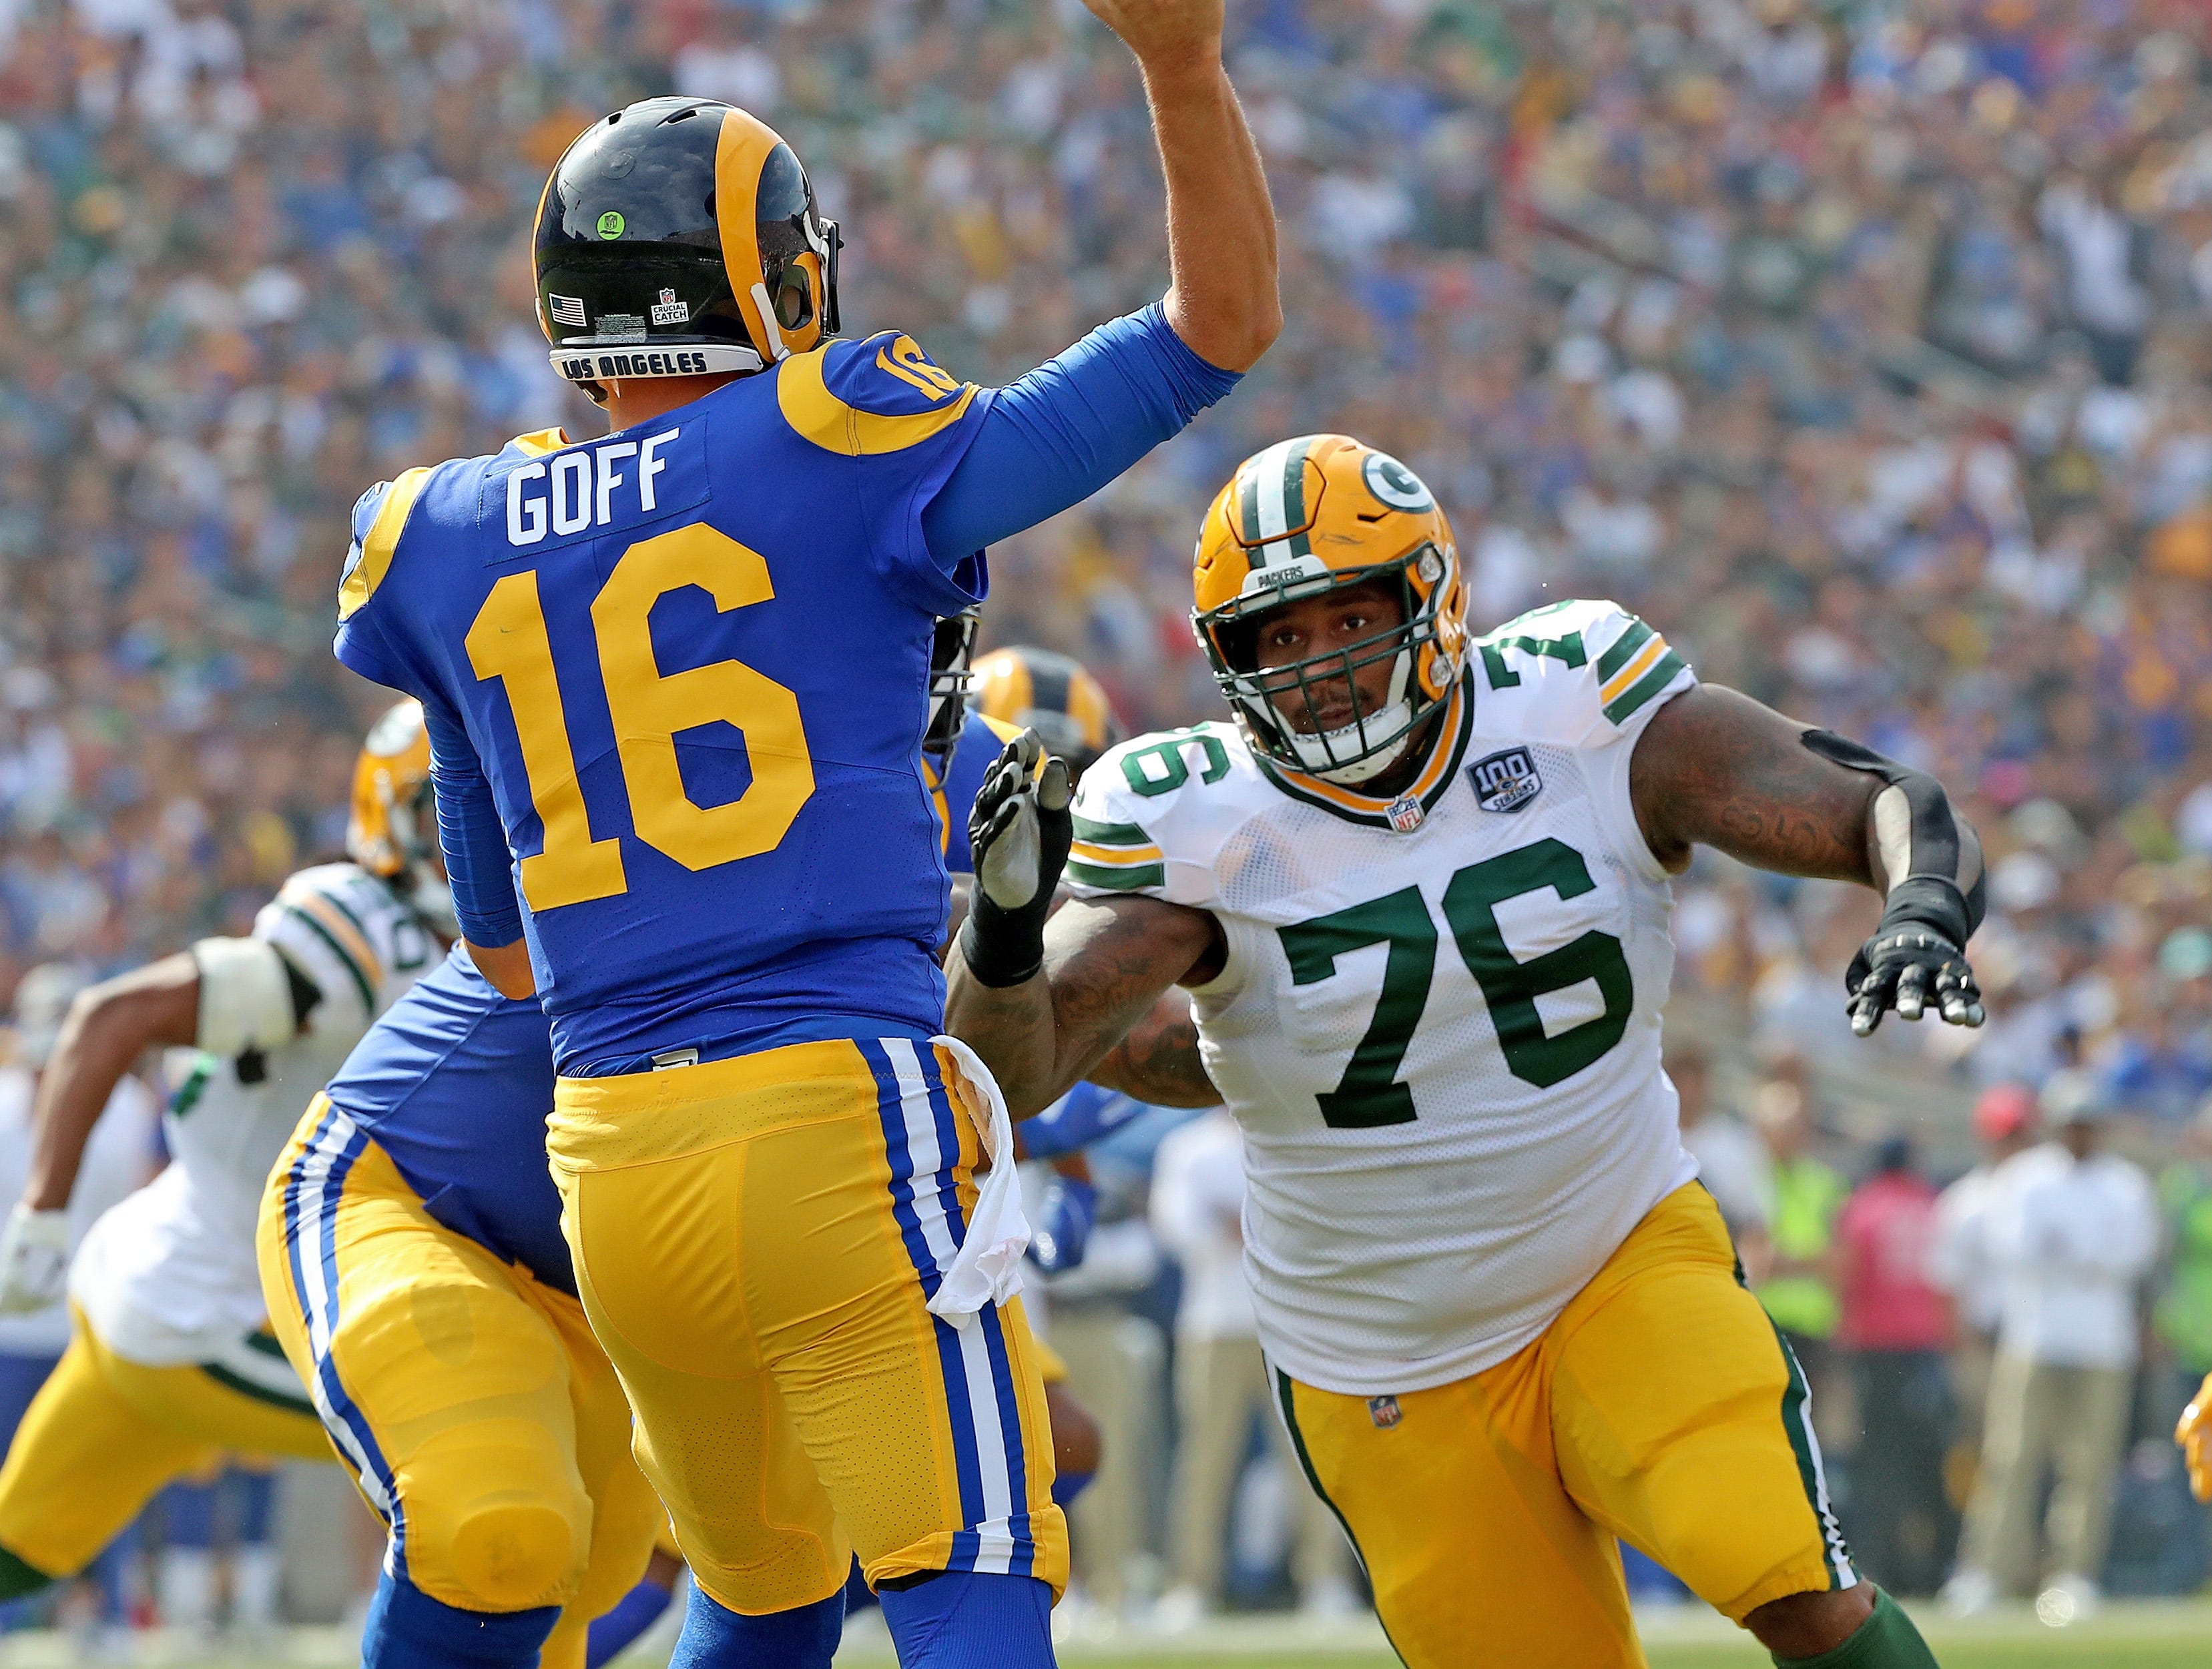 Green Bay Packers defensive tackle Mike Daniels (76) pressures quarterback Jared Goff (16) against the LA Rams Sunday, October 28, 2018 at the Memorial Coliseum in Los Angeles.